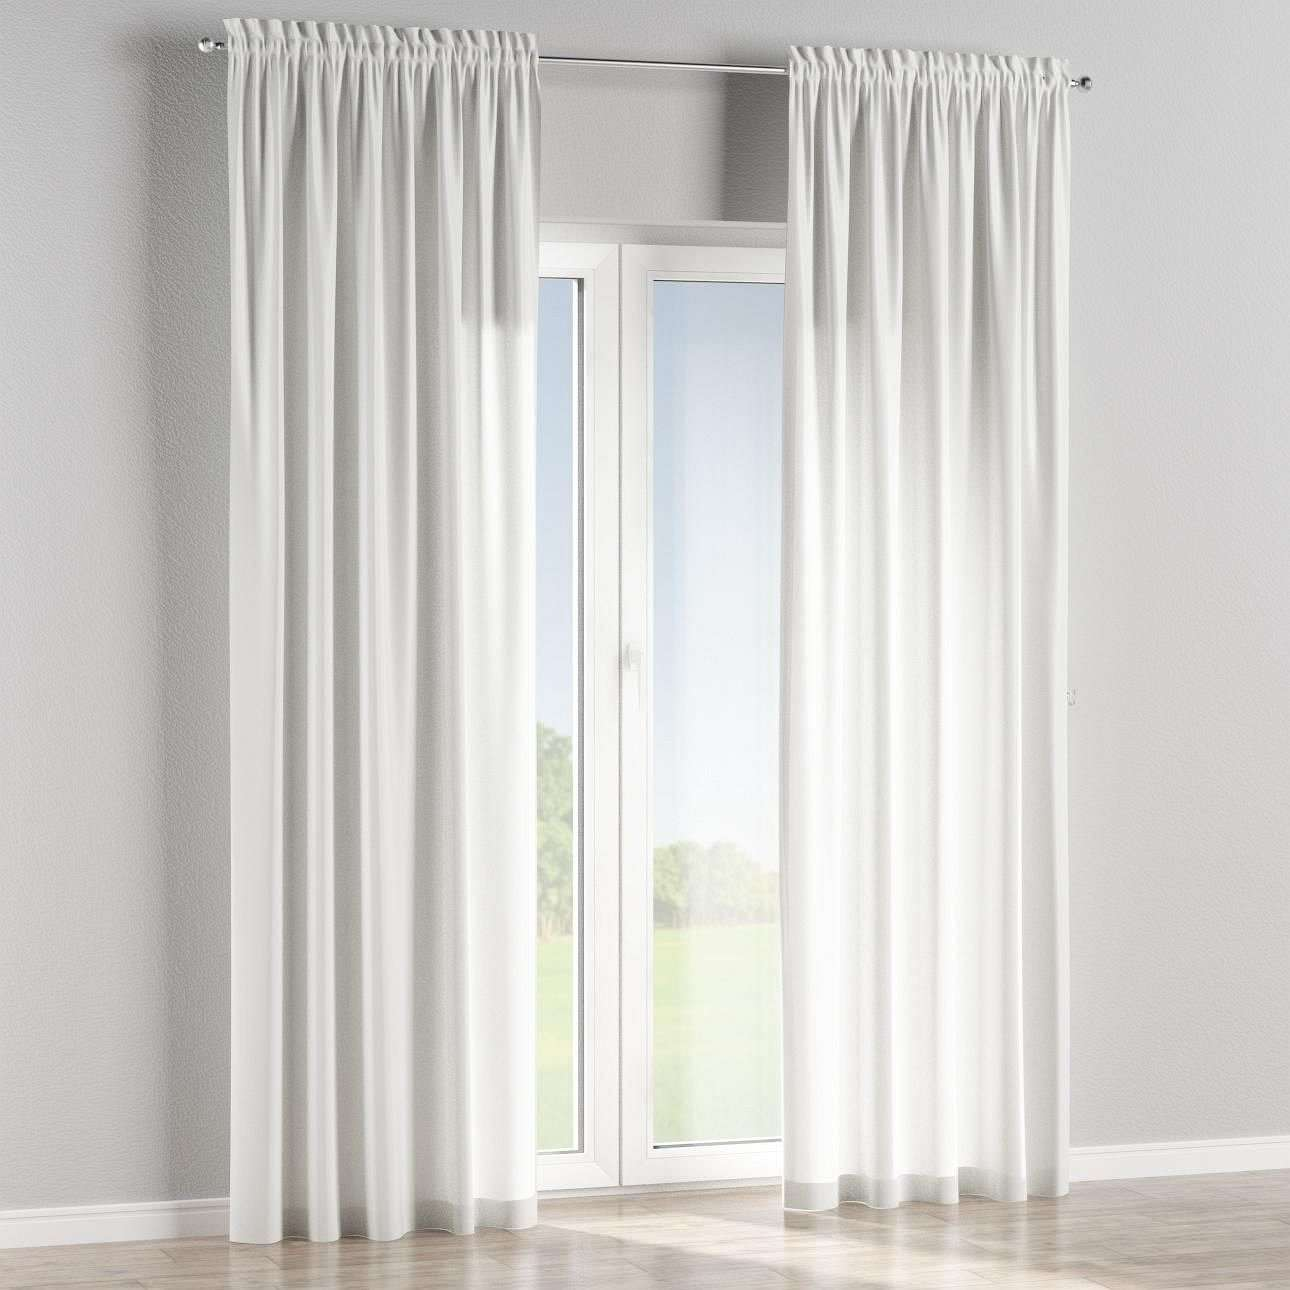 Slot and frill lined curtains in collection Rustica, fabric: 138-11